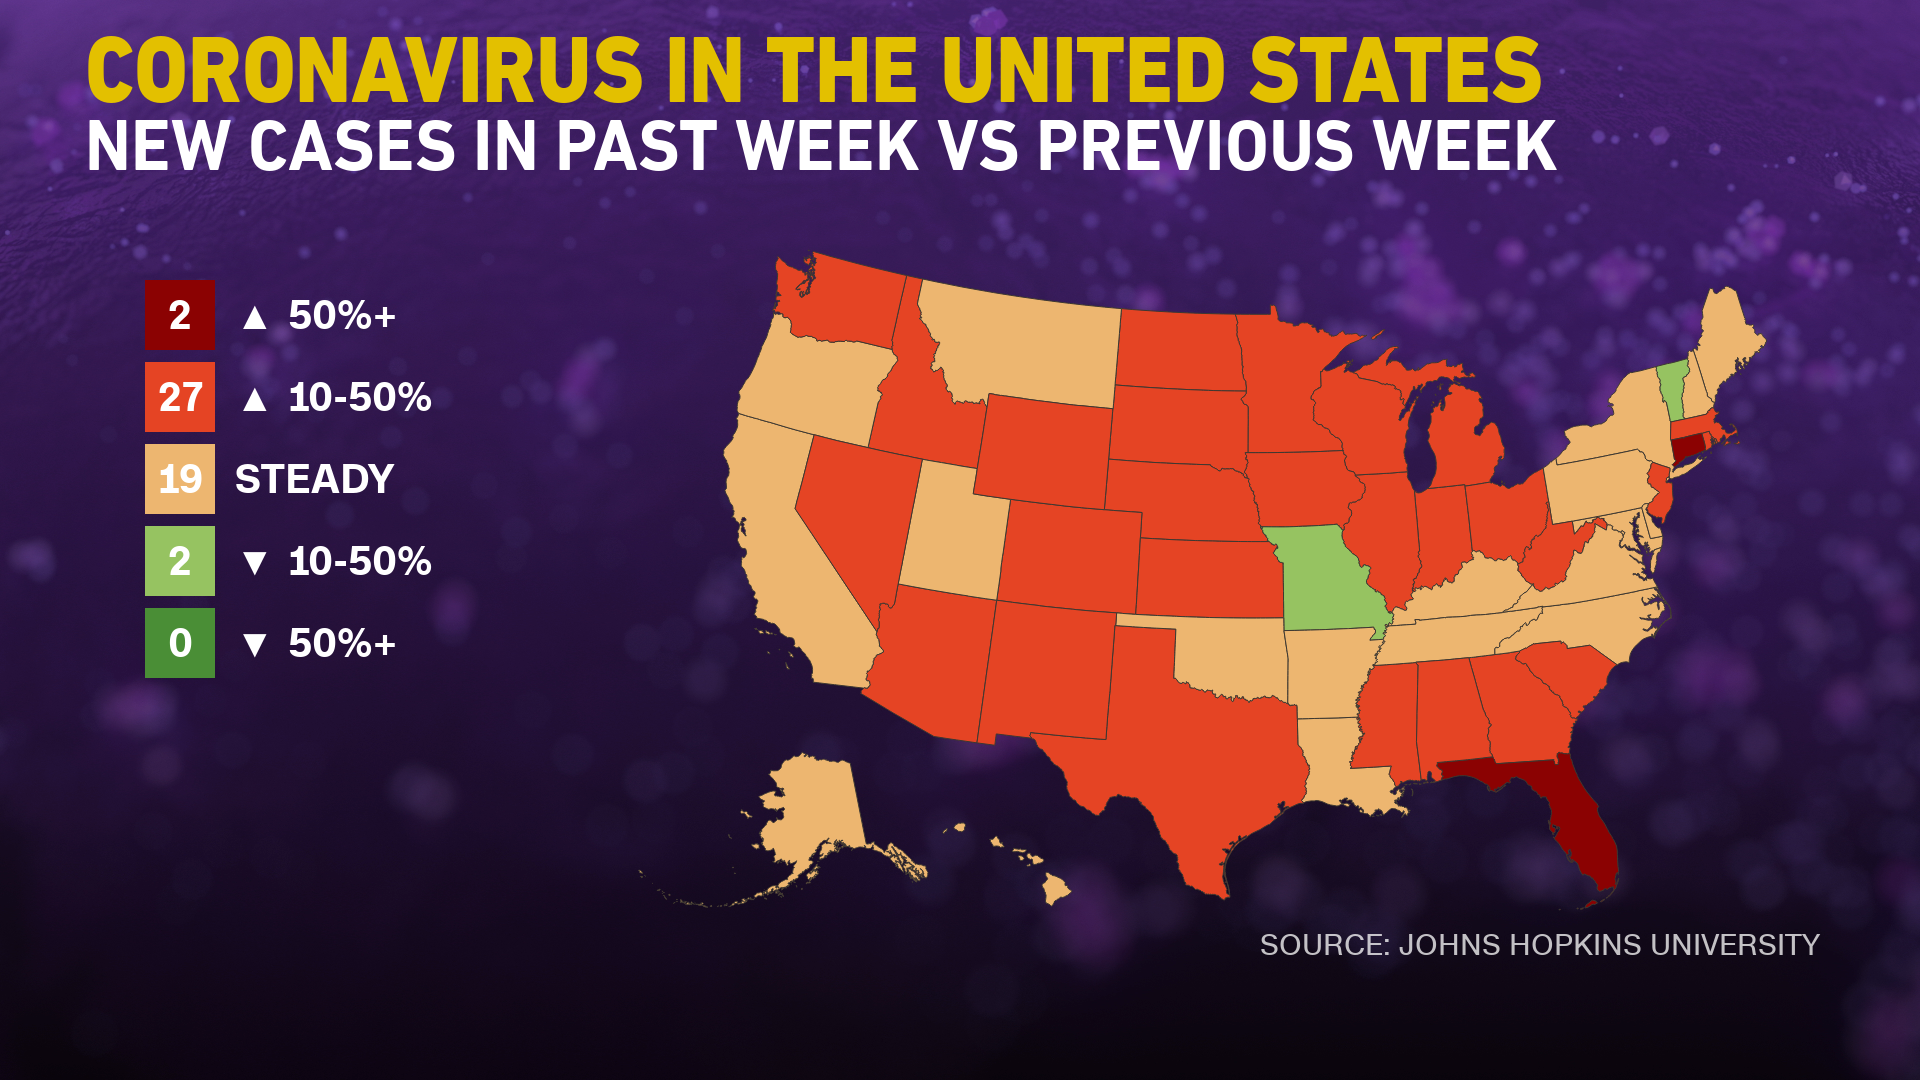 Coronavirus cases are increasing in 29 US states — and only two states are reporting decreases, according to data from Johns Hopkins University